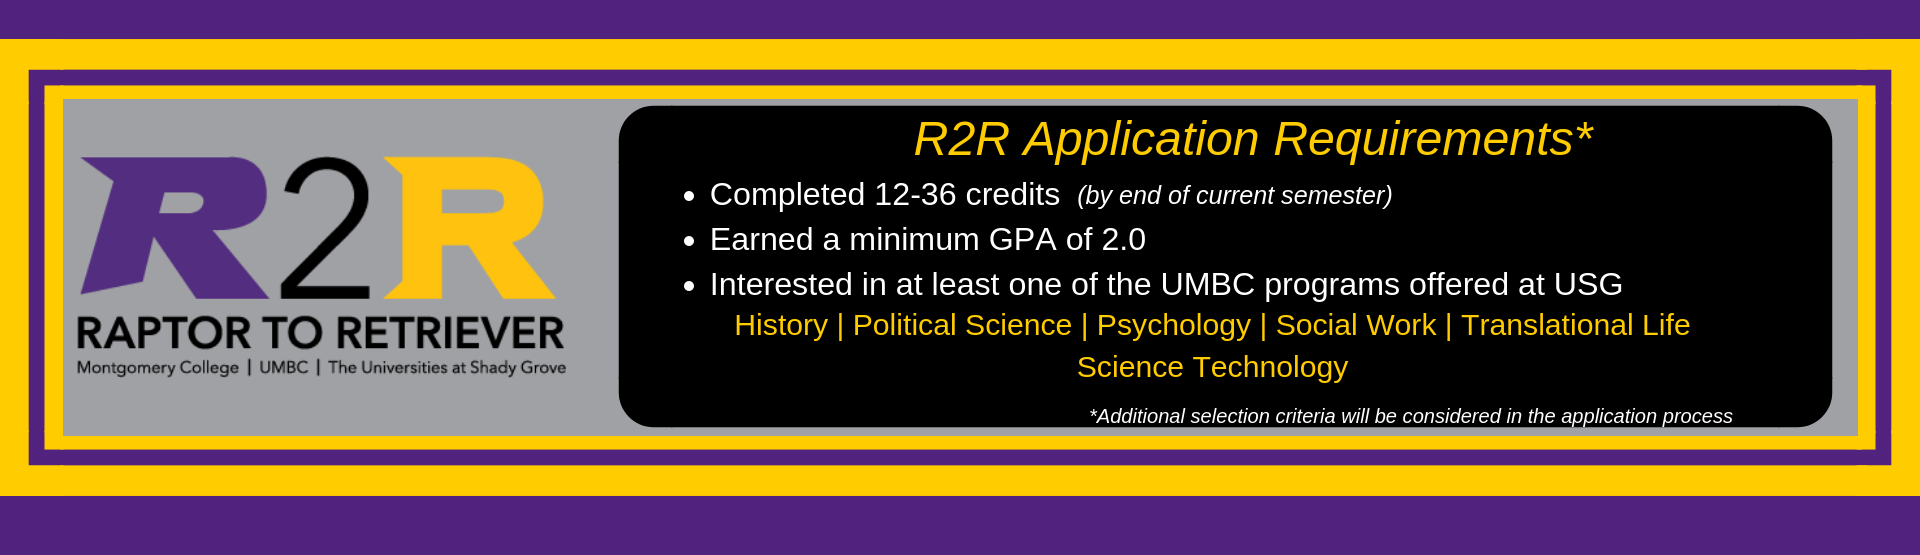 R2R Application Requirements: 2.0 minimum GPA, 12-36 completed credits, interest in at least one UMBC@USG program: History, Psychology, Social Work, Political Science, and/or Translational Life Science Technology)